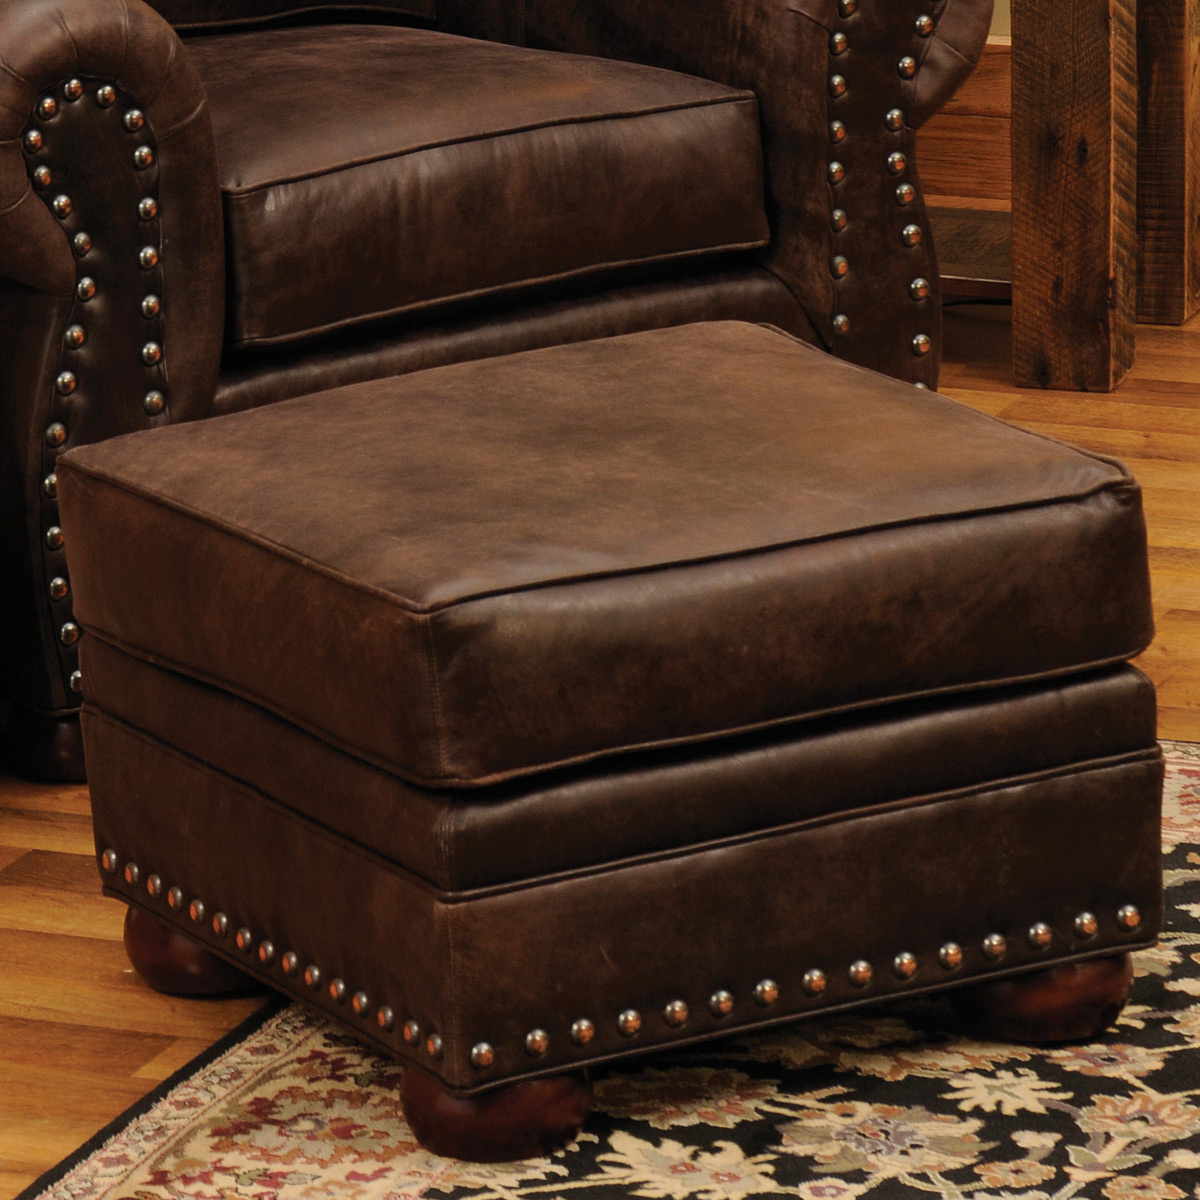 Jerome Davis Ottoman in Timber Leather